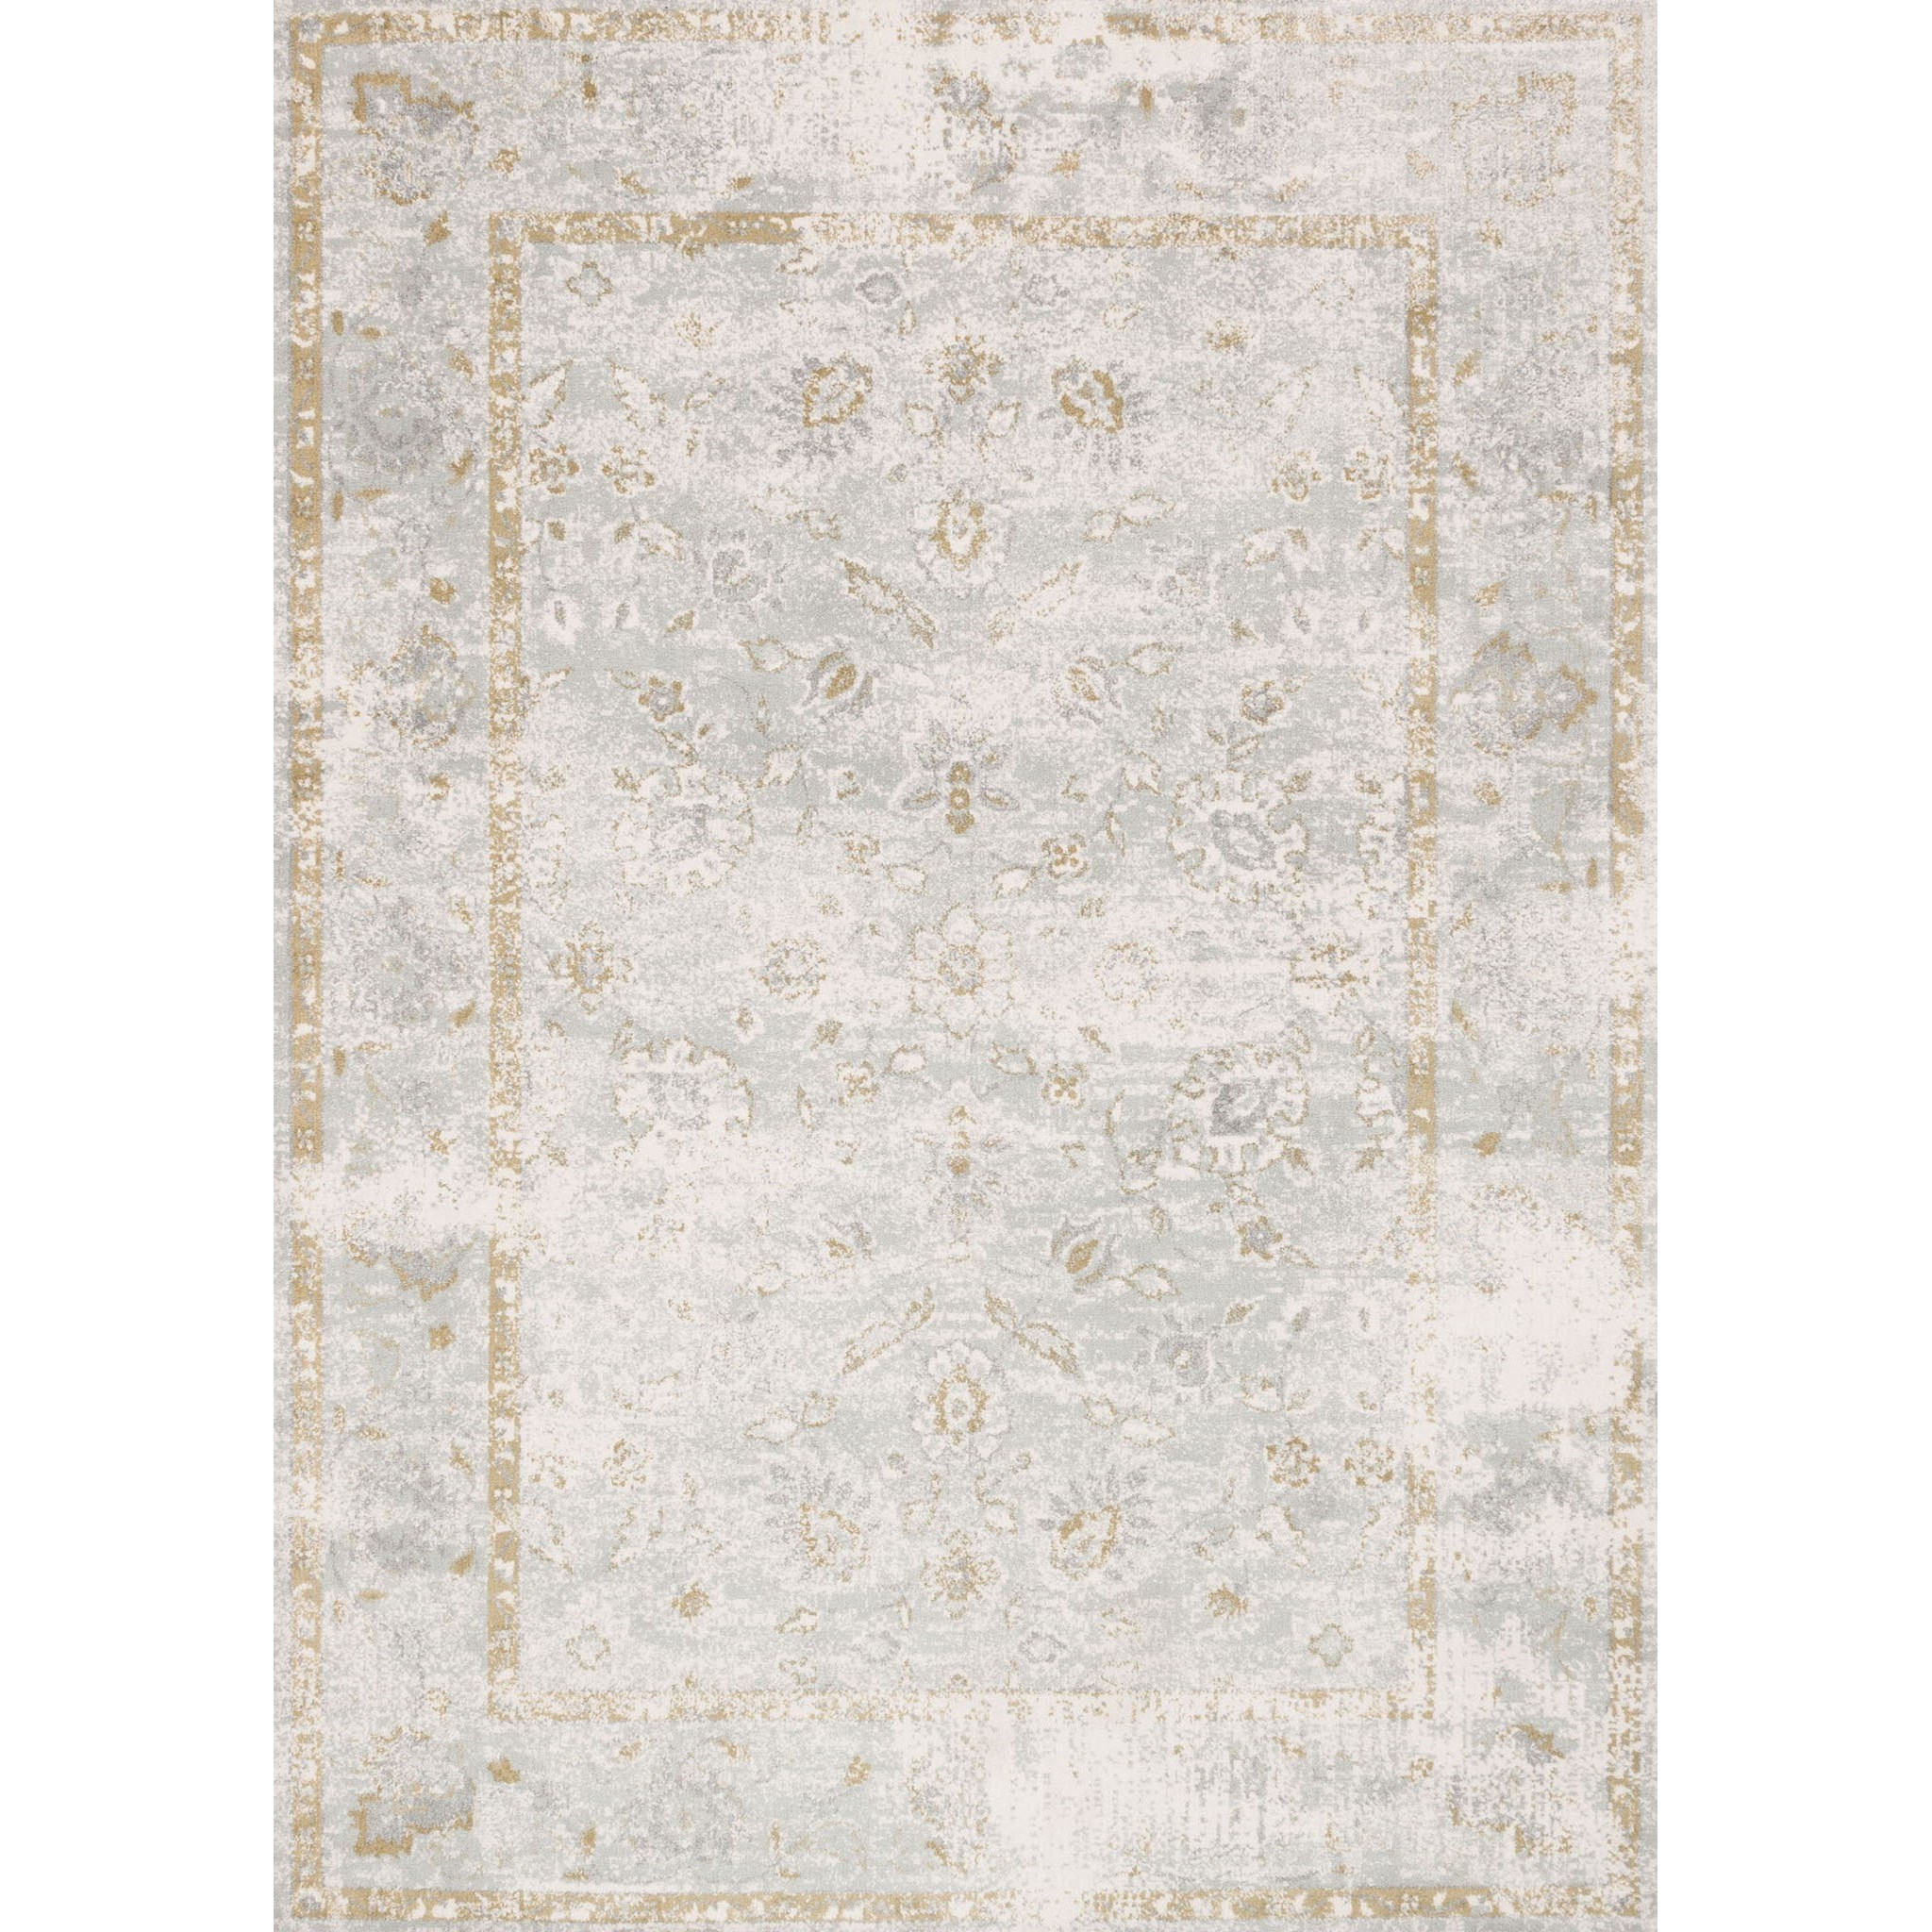 "Torrance 6'-7"" X 9'-2"" Rug by Loloi Rugs at Belfort Furniture"